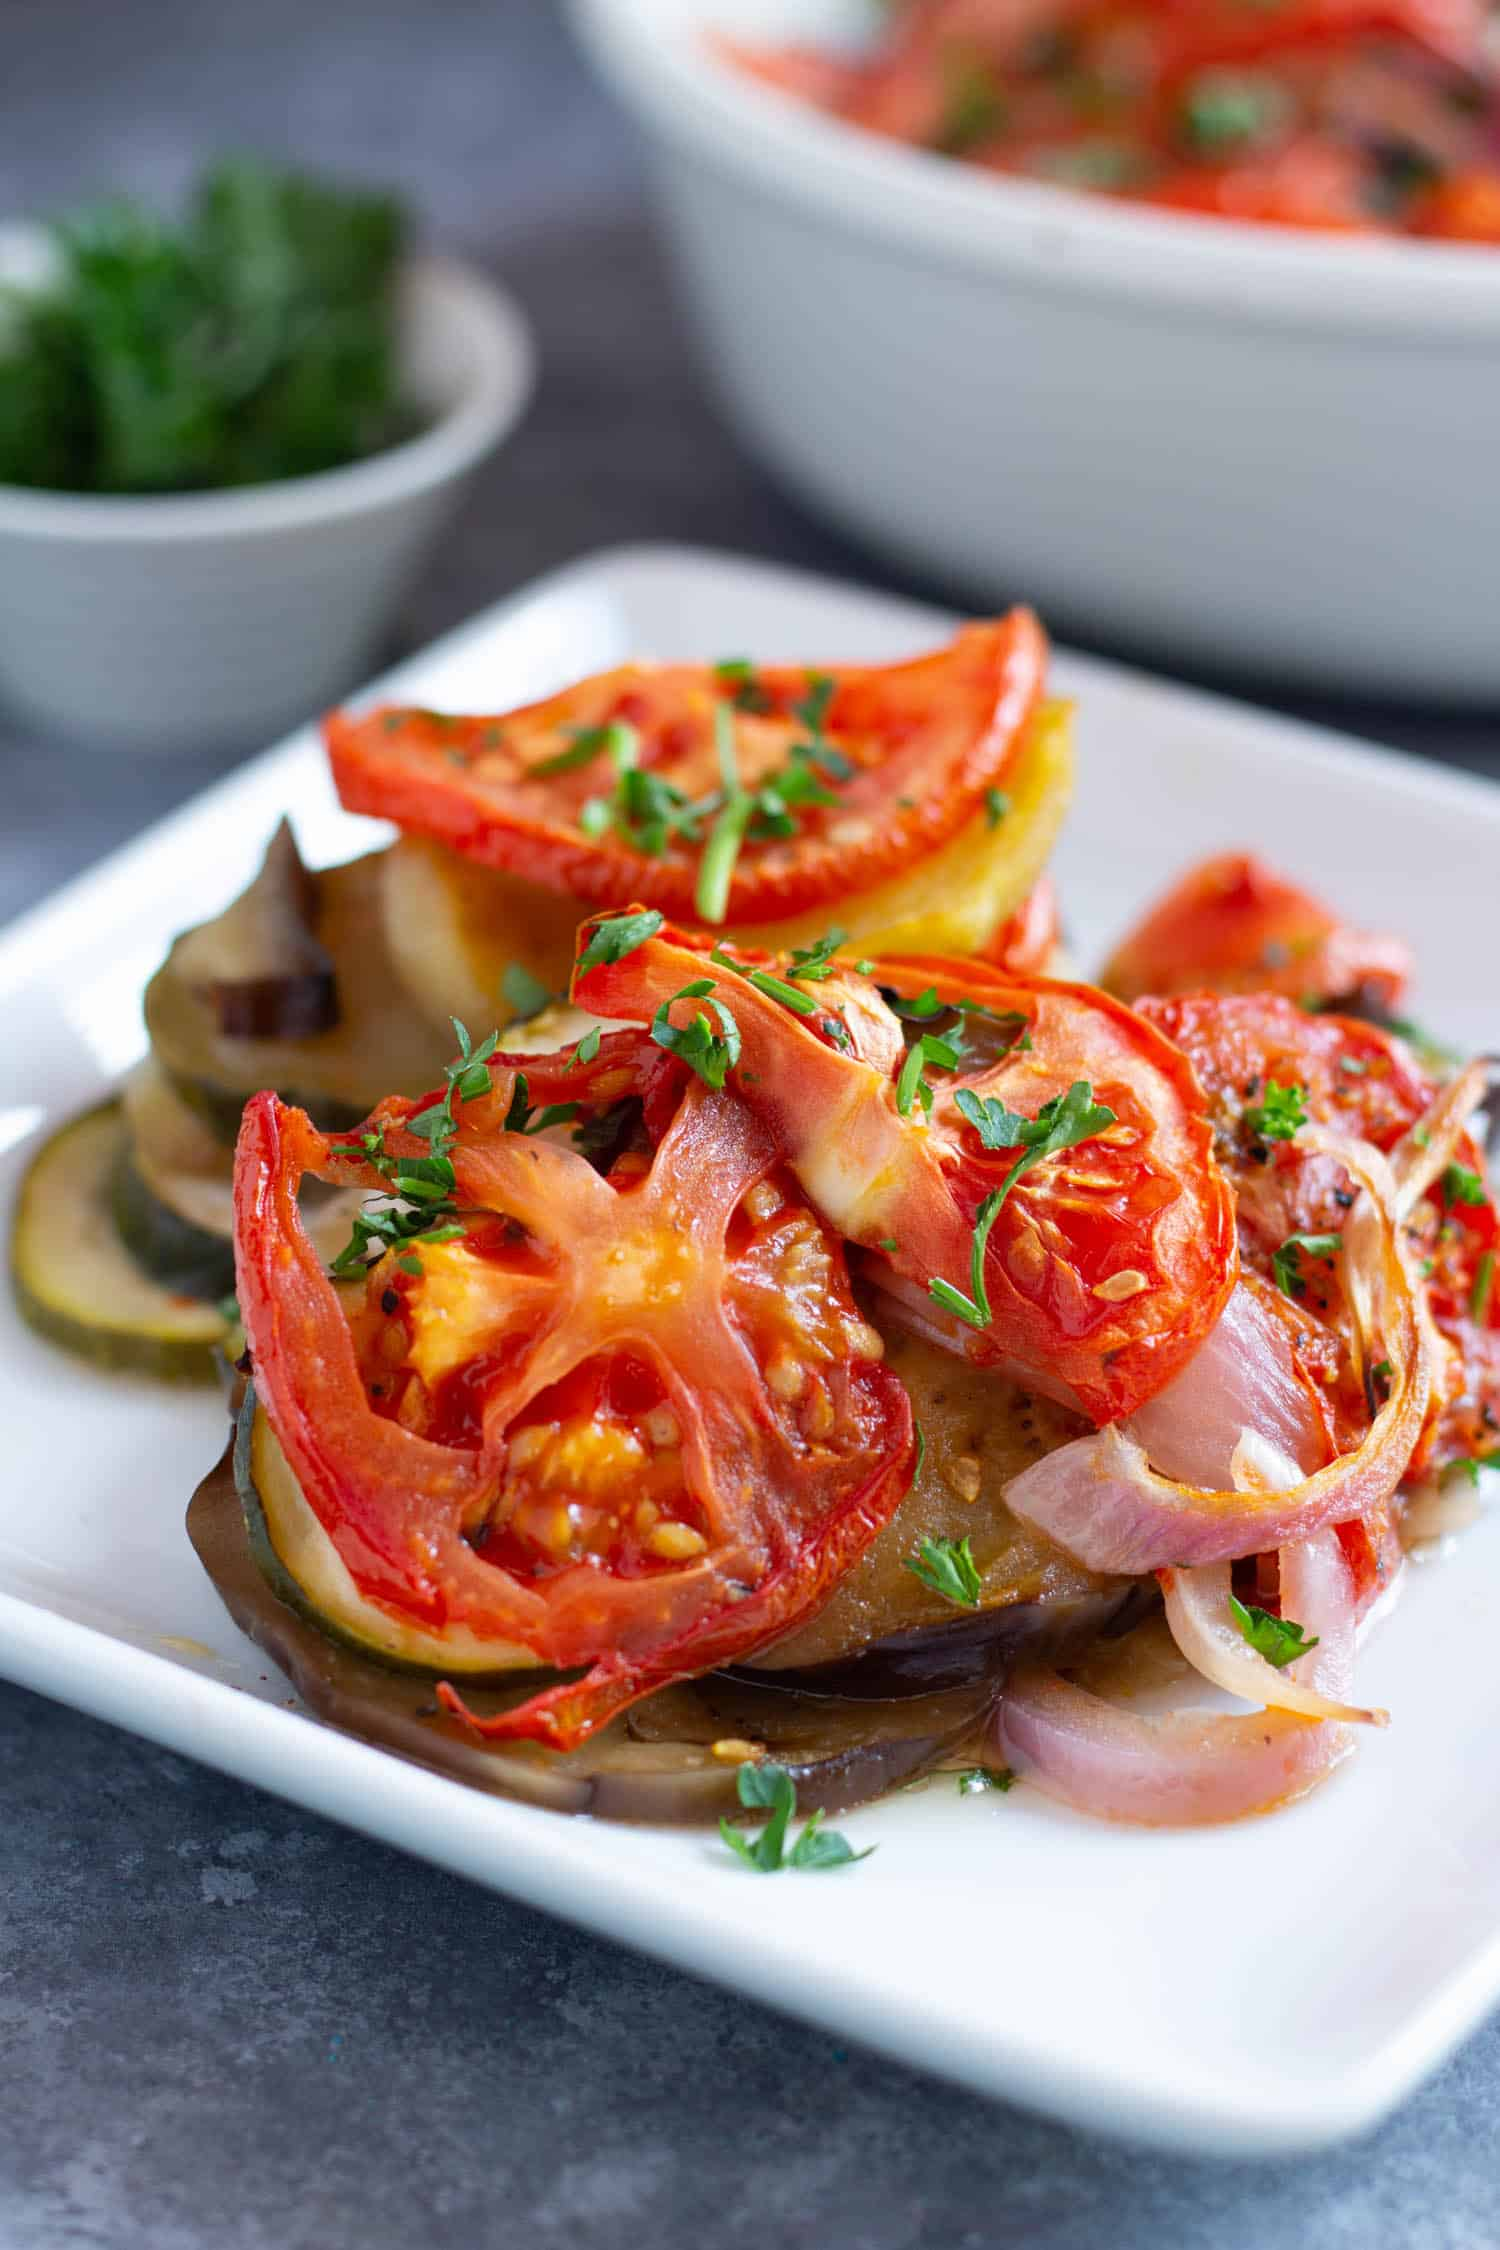 Briam is easy to make and topped with tomatoes and onions. Perfect for a light lunch or dinner.